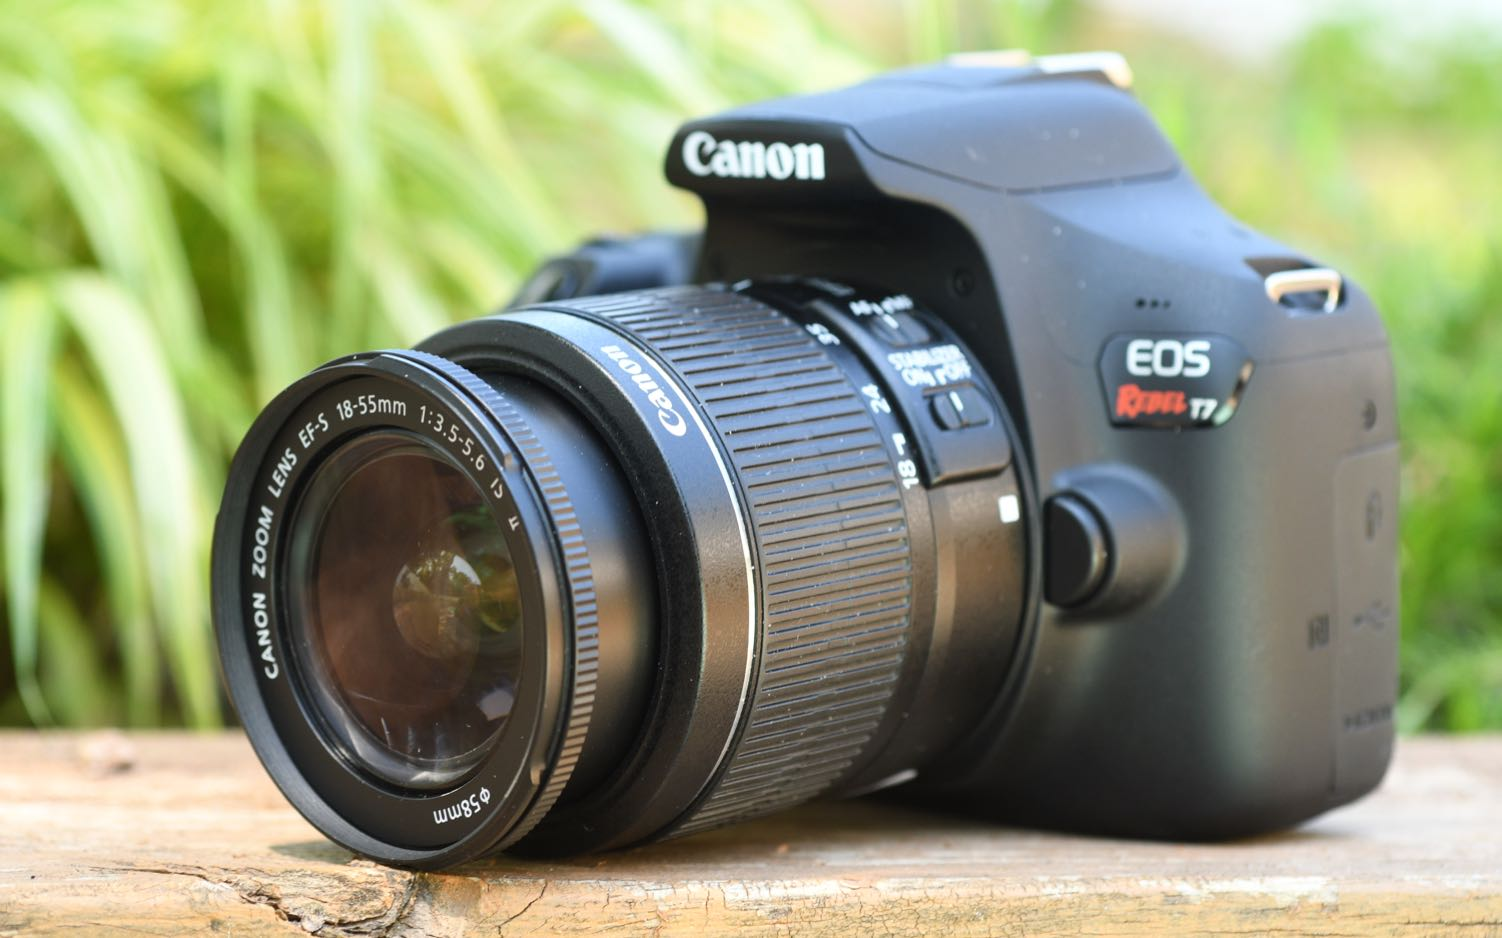 Canon EOS Rebel T7 - Full Review and Benchmarks | Tom's Guide